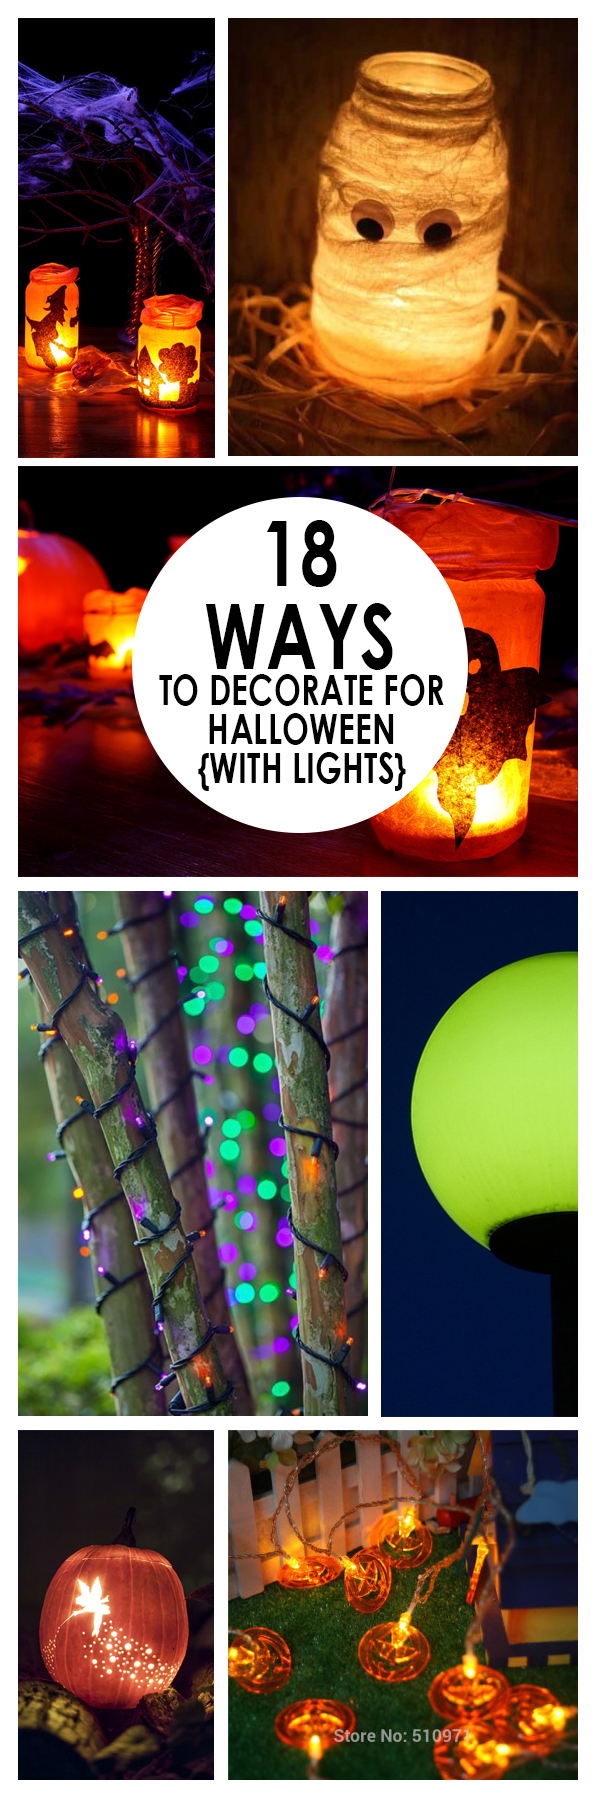 DIY Halloween Decor, Halloween Decor, HAlloween Decorations, Halloween Decorations DIY, Halloween Decor DIY, Halloween Decor Projects